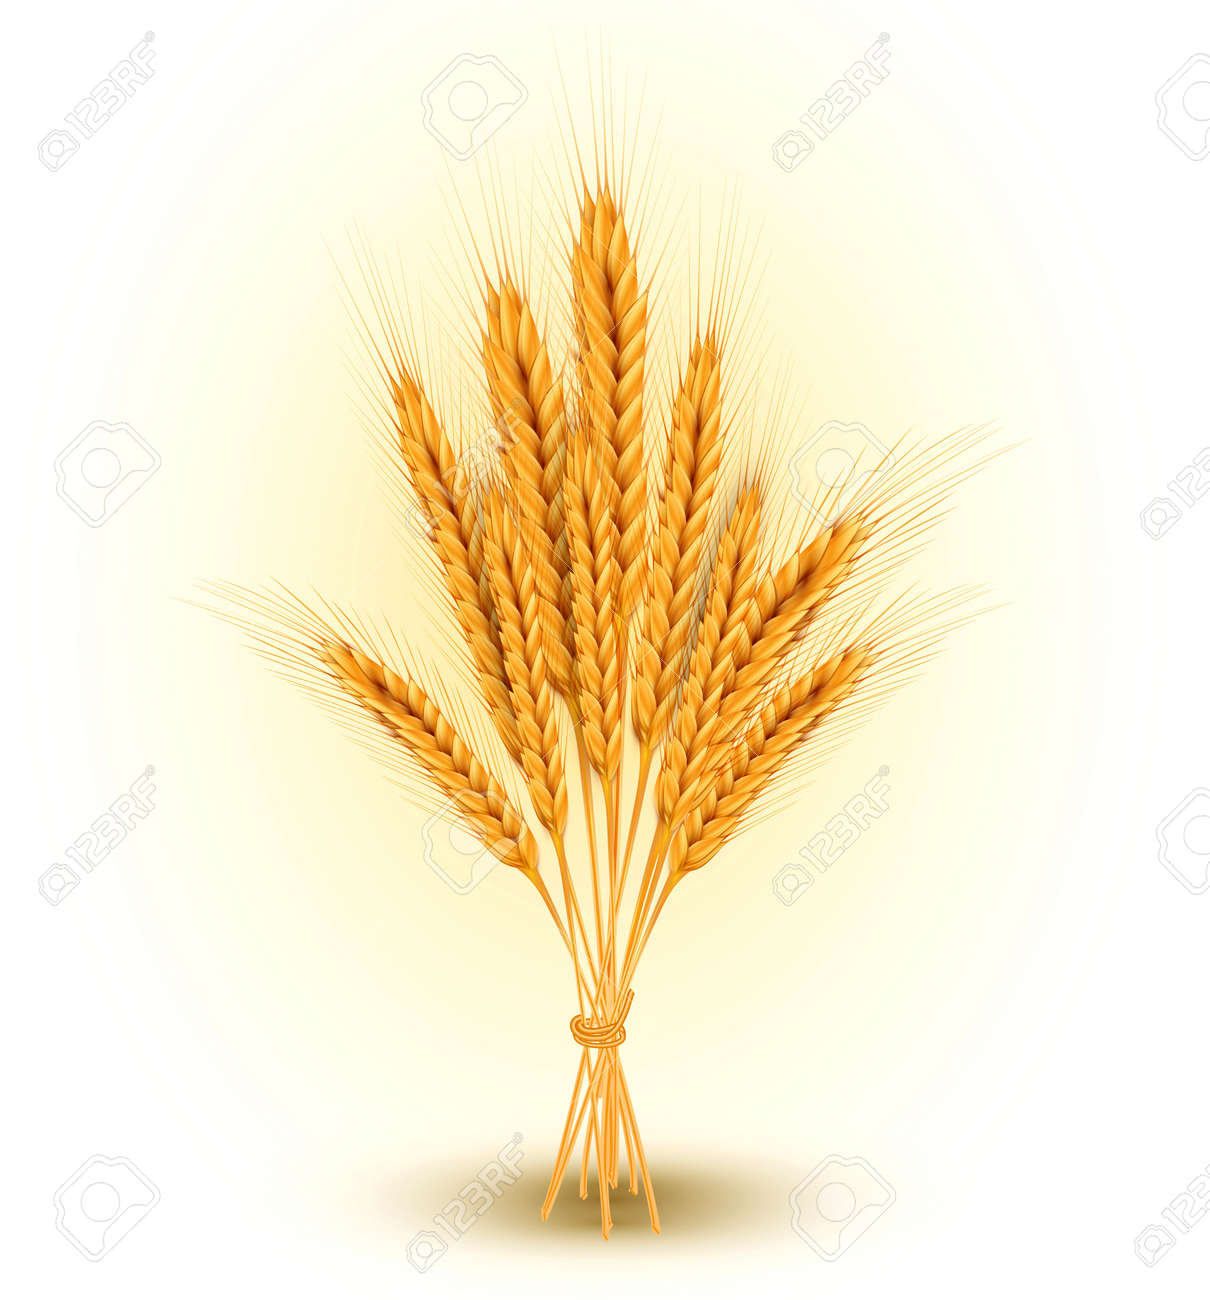 background with a sheaf of golden wheat ears Stock Vector - 20747291